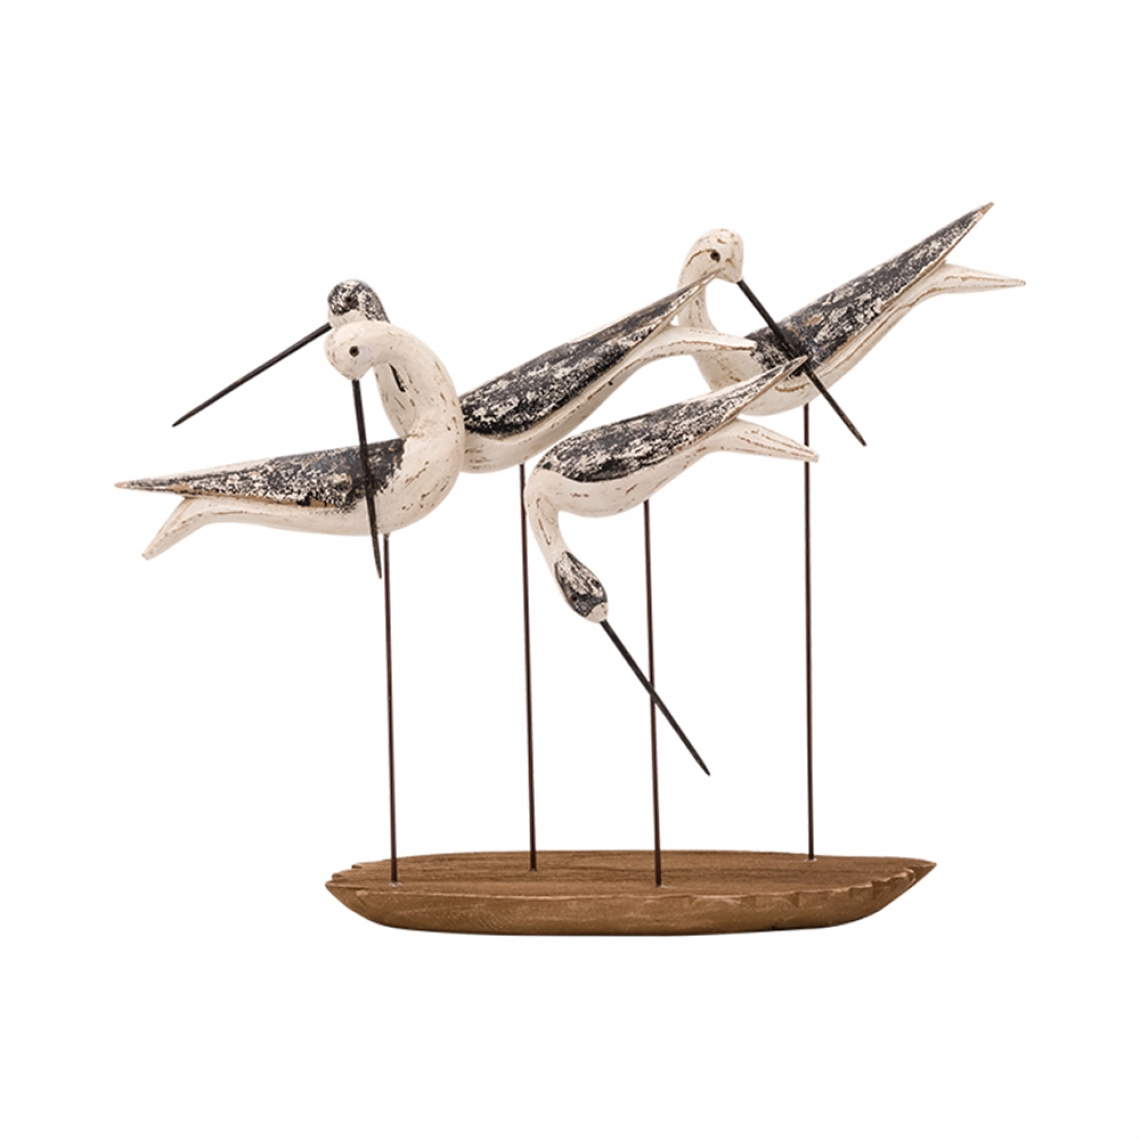 4 birds with base